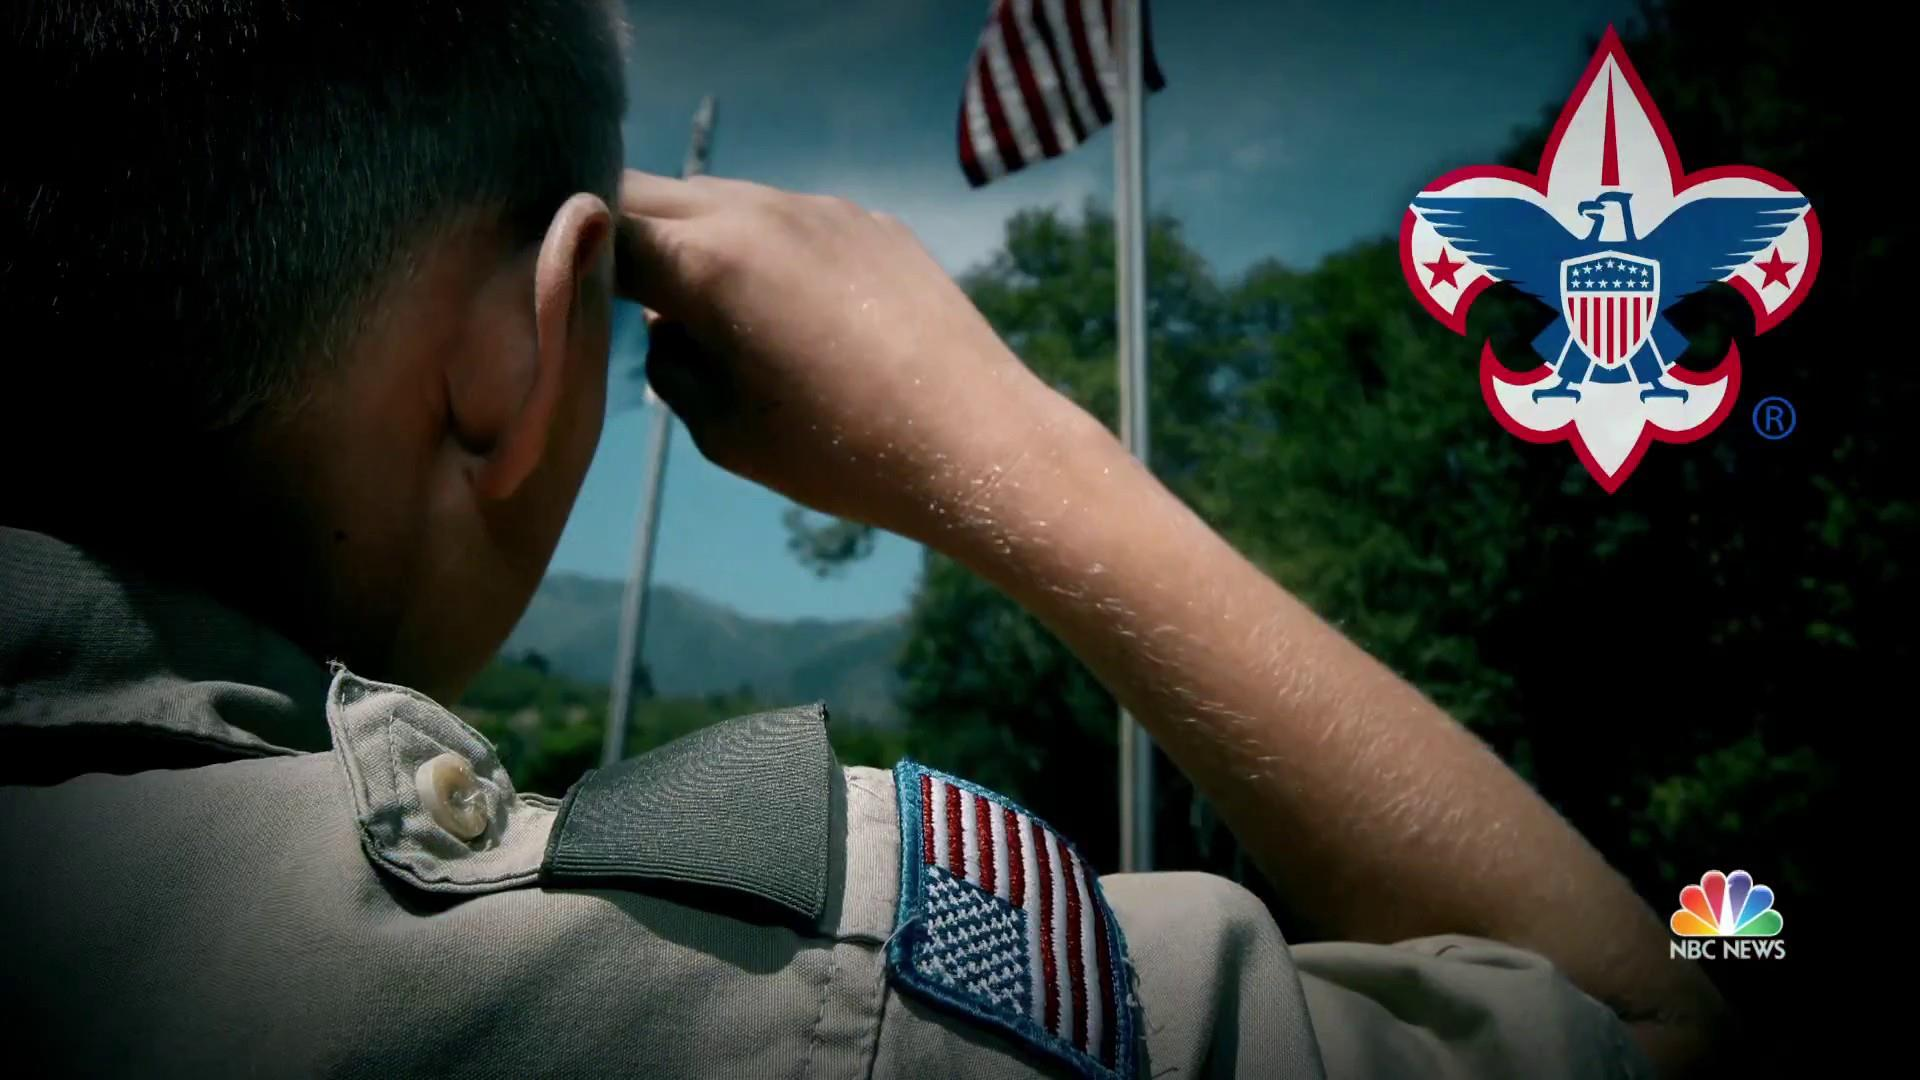 Boy Scouts of America have a 'pedophile epidemic' and are hiding hundreds in its ranks, lawyers claim